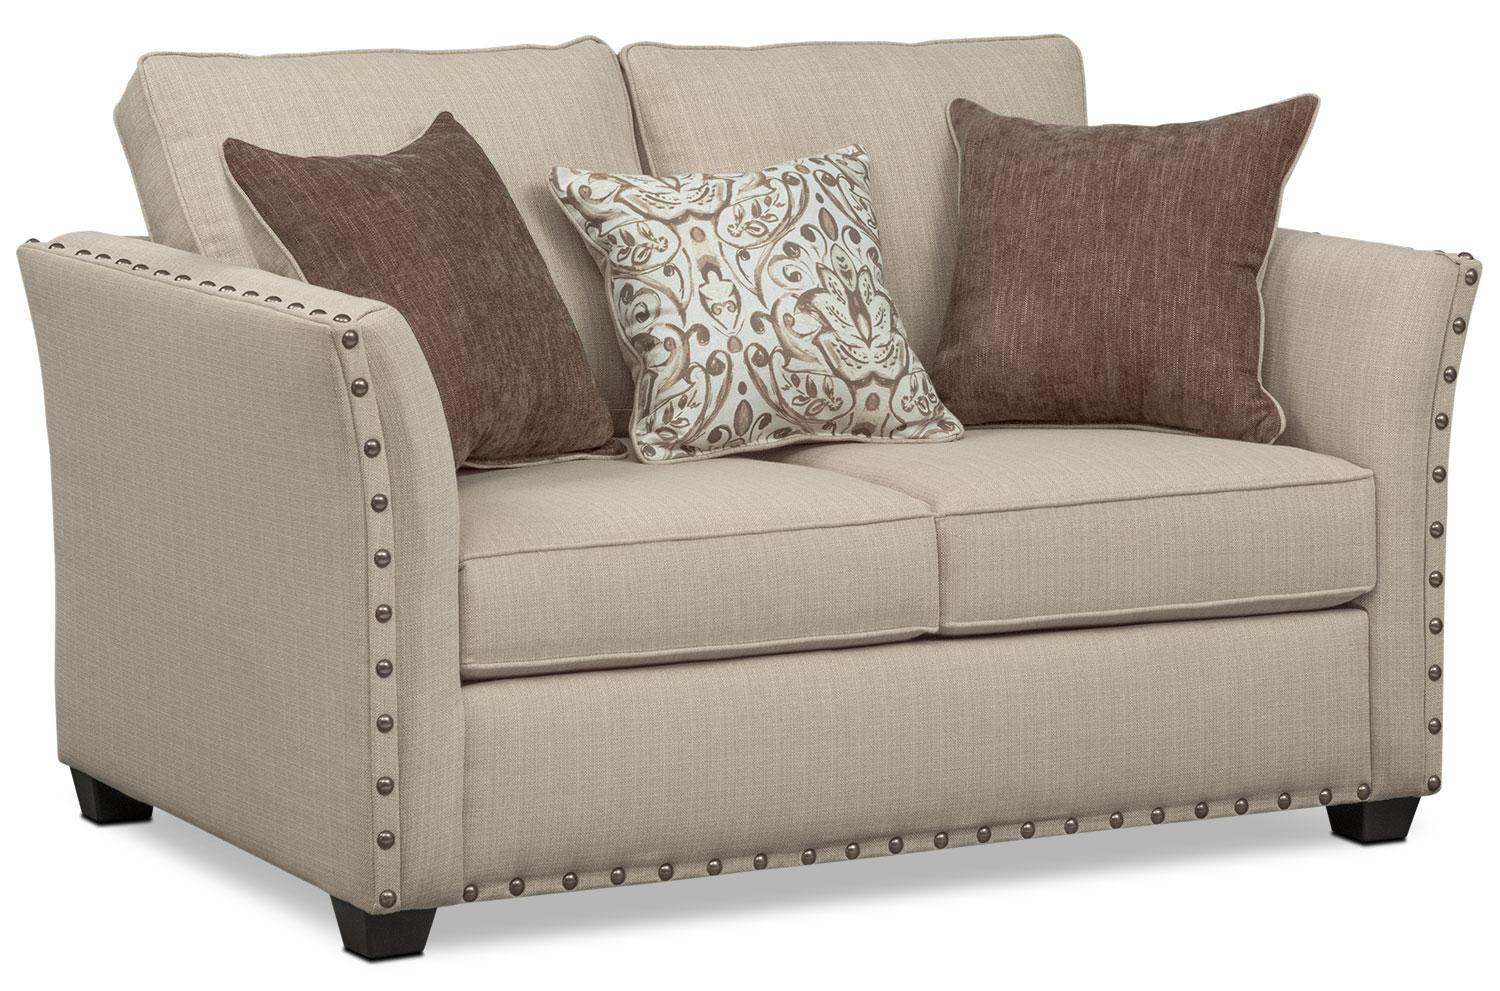 Mckenna Queen Memory Foam Sleeper Sofa, Loveseat, And Chair Set For Sofa Loveseat And Chair Set (View 18 of 20)